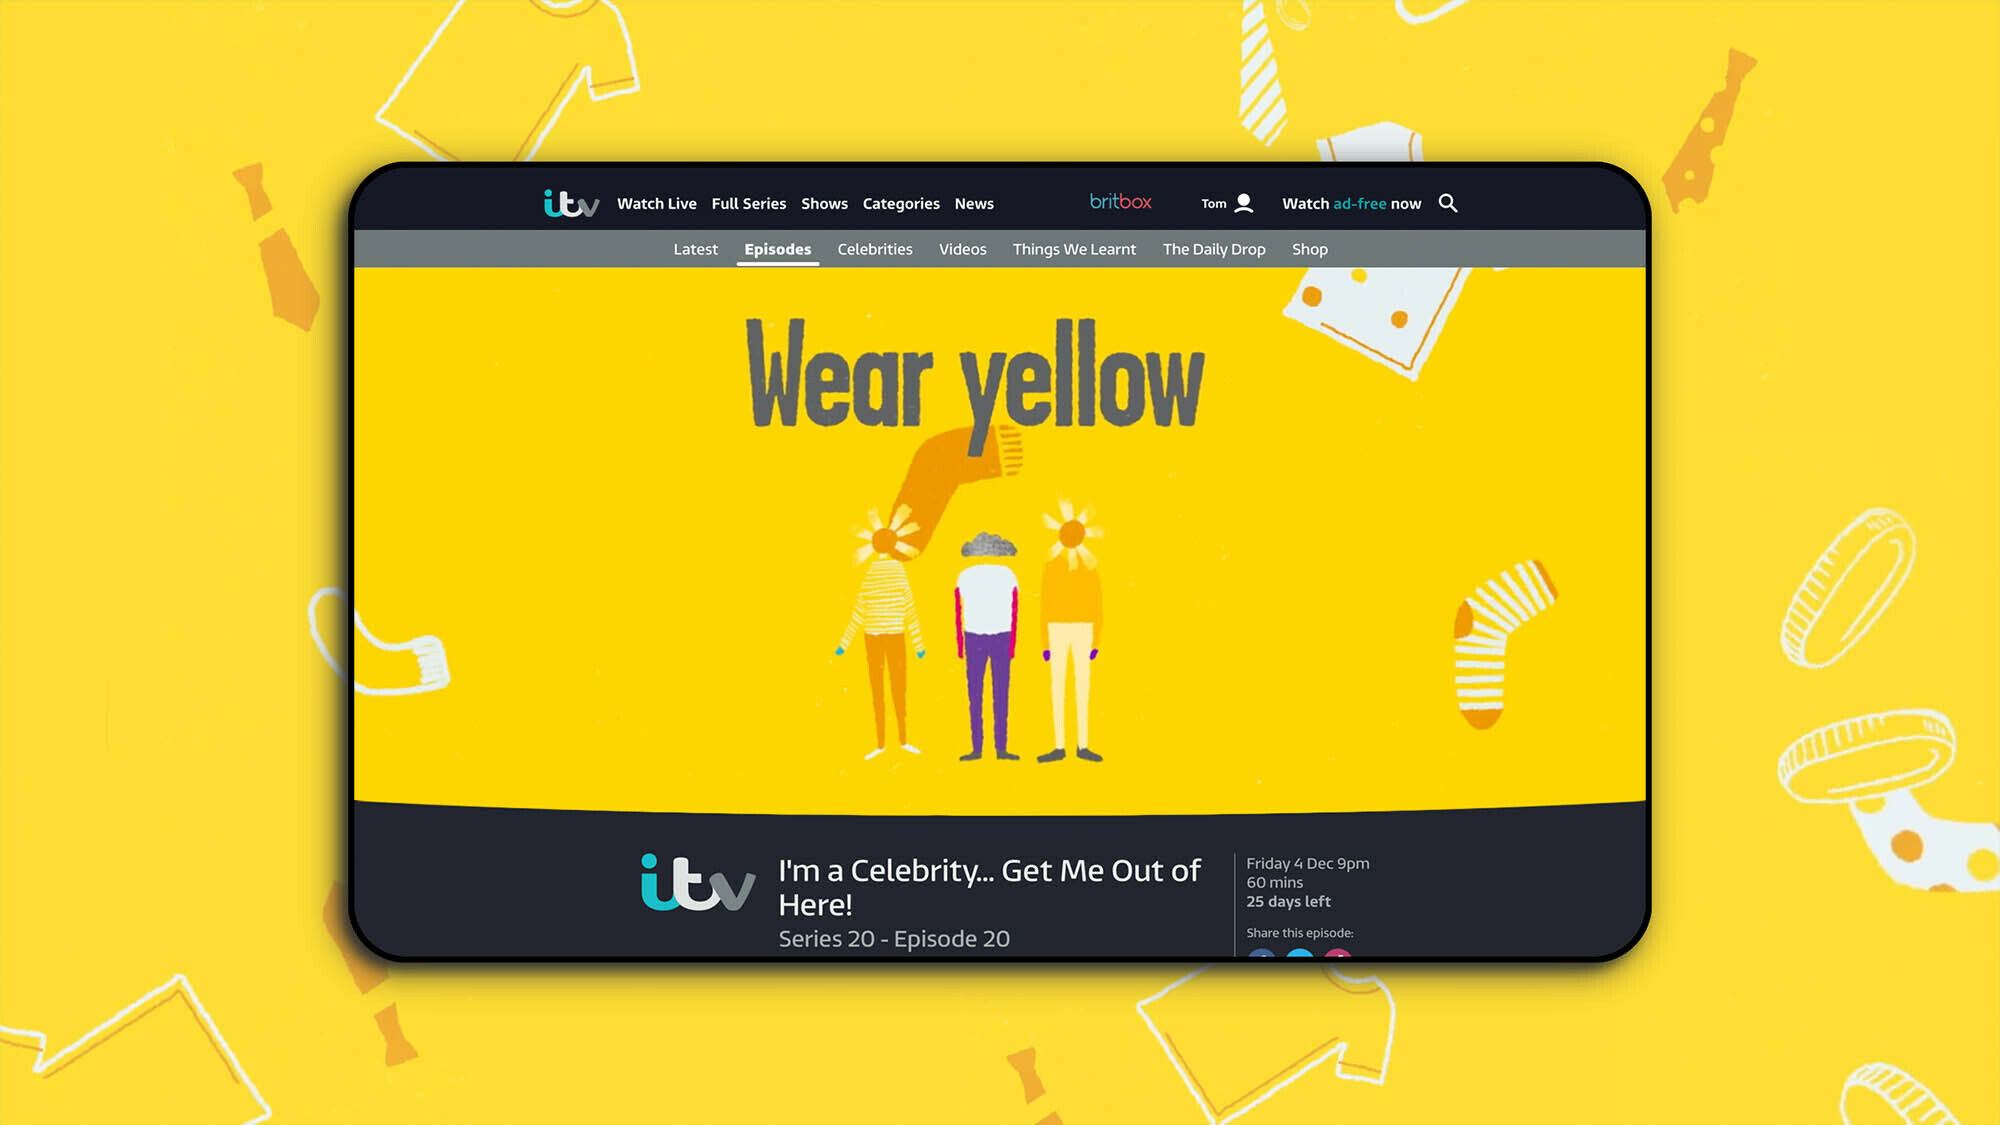 Young Minds' #WearYellow campaign featured on ITV Player pre-roll adverts